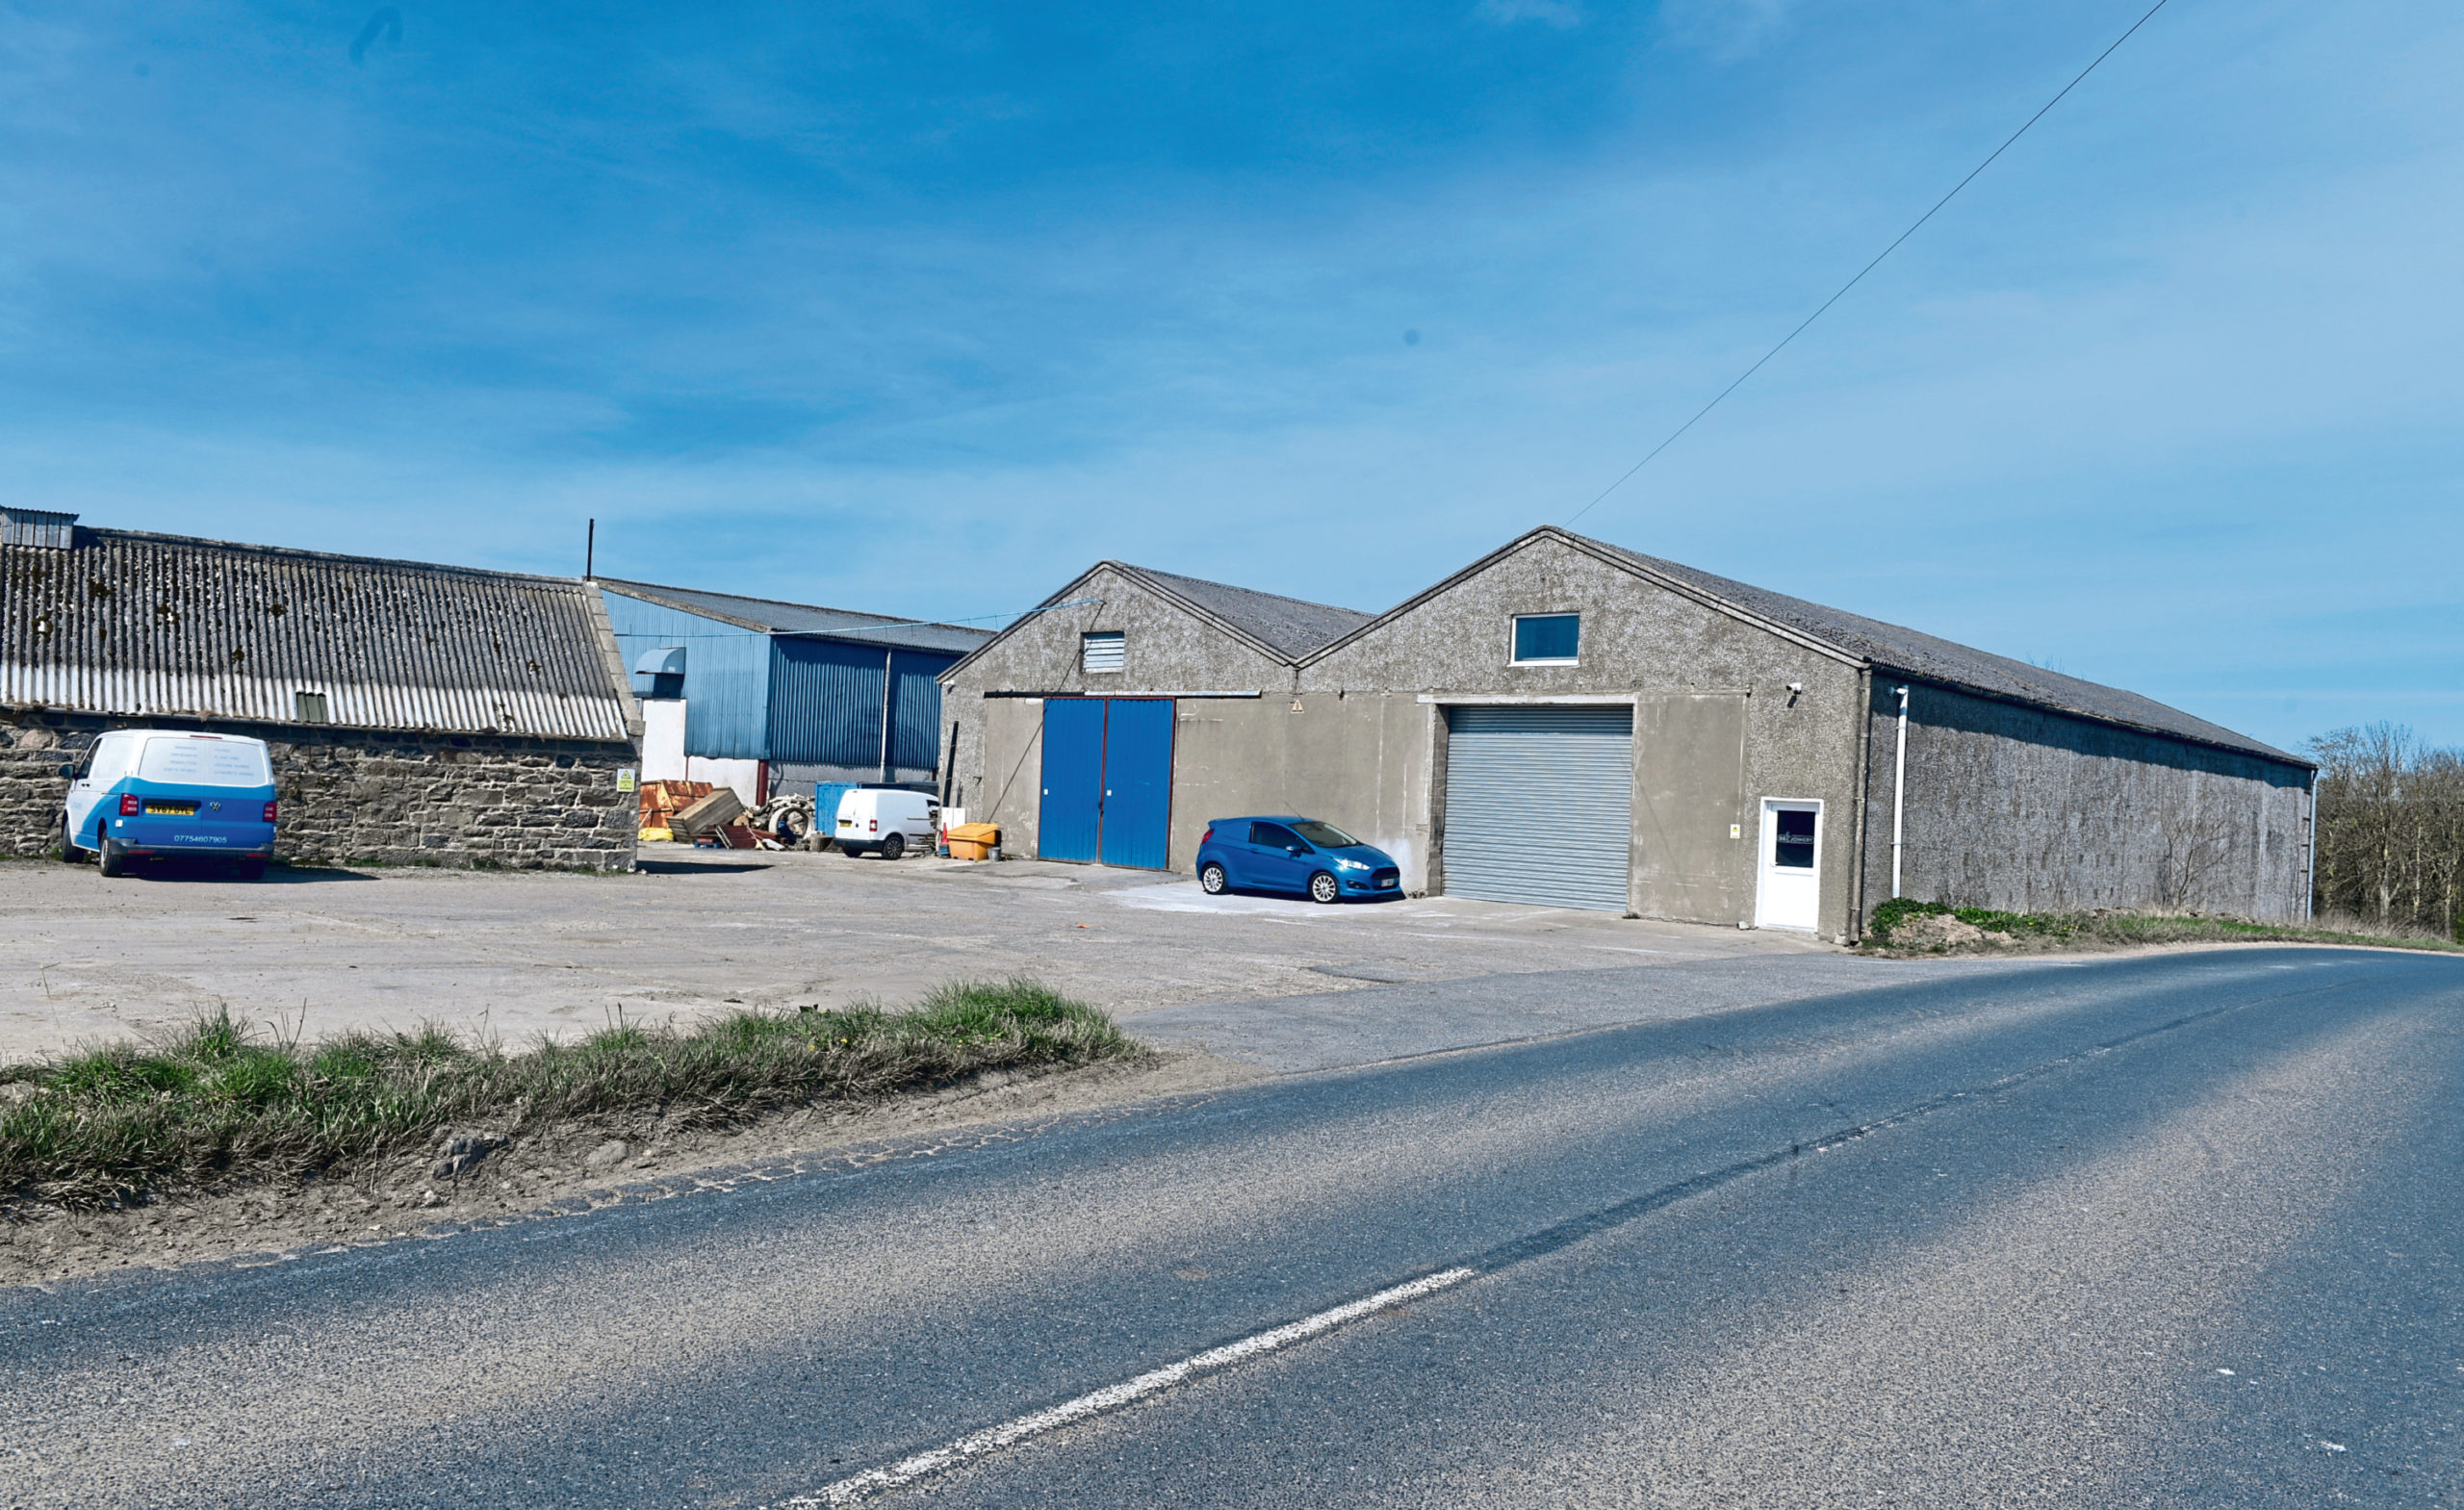 The site near Ellon would be turned into a gymnastics centre